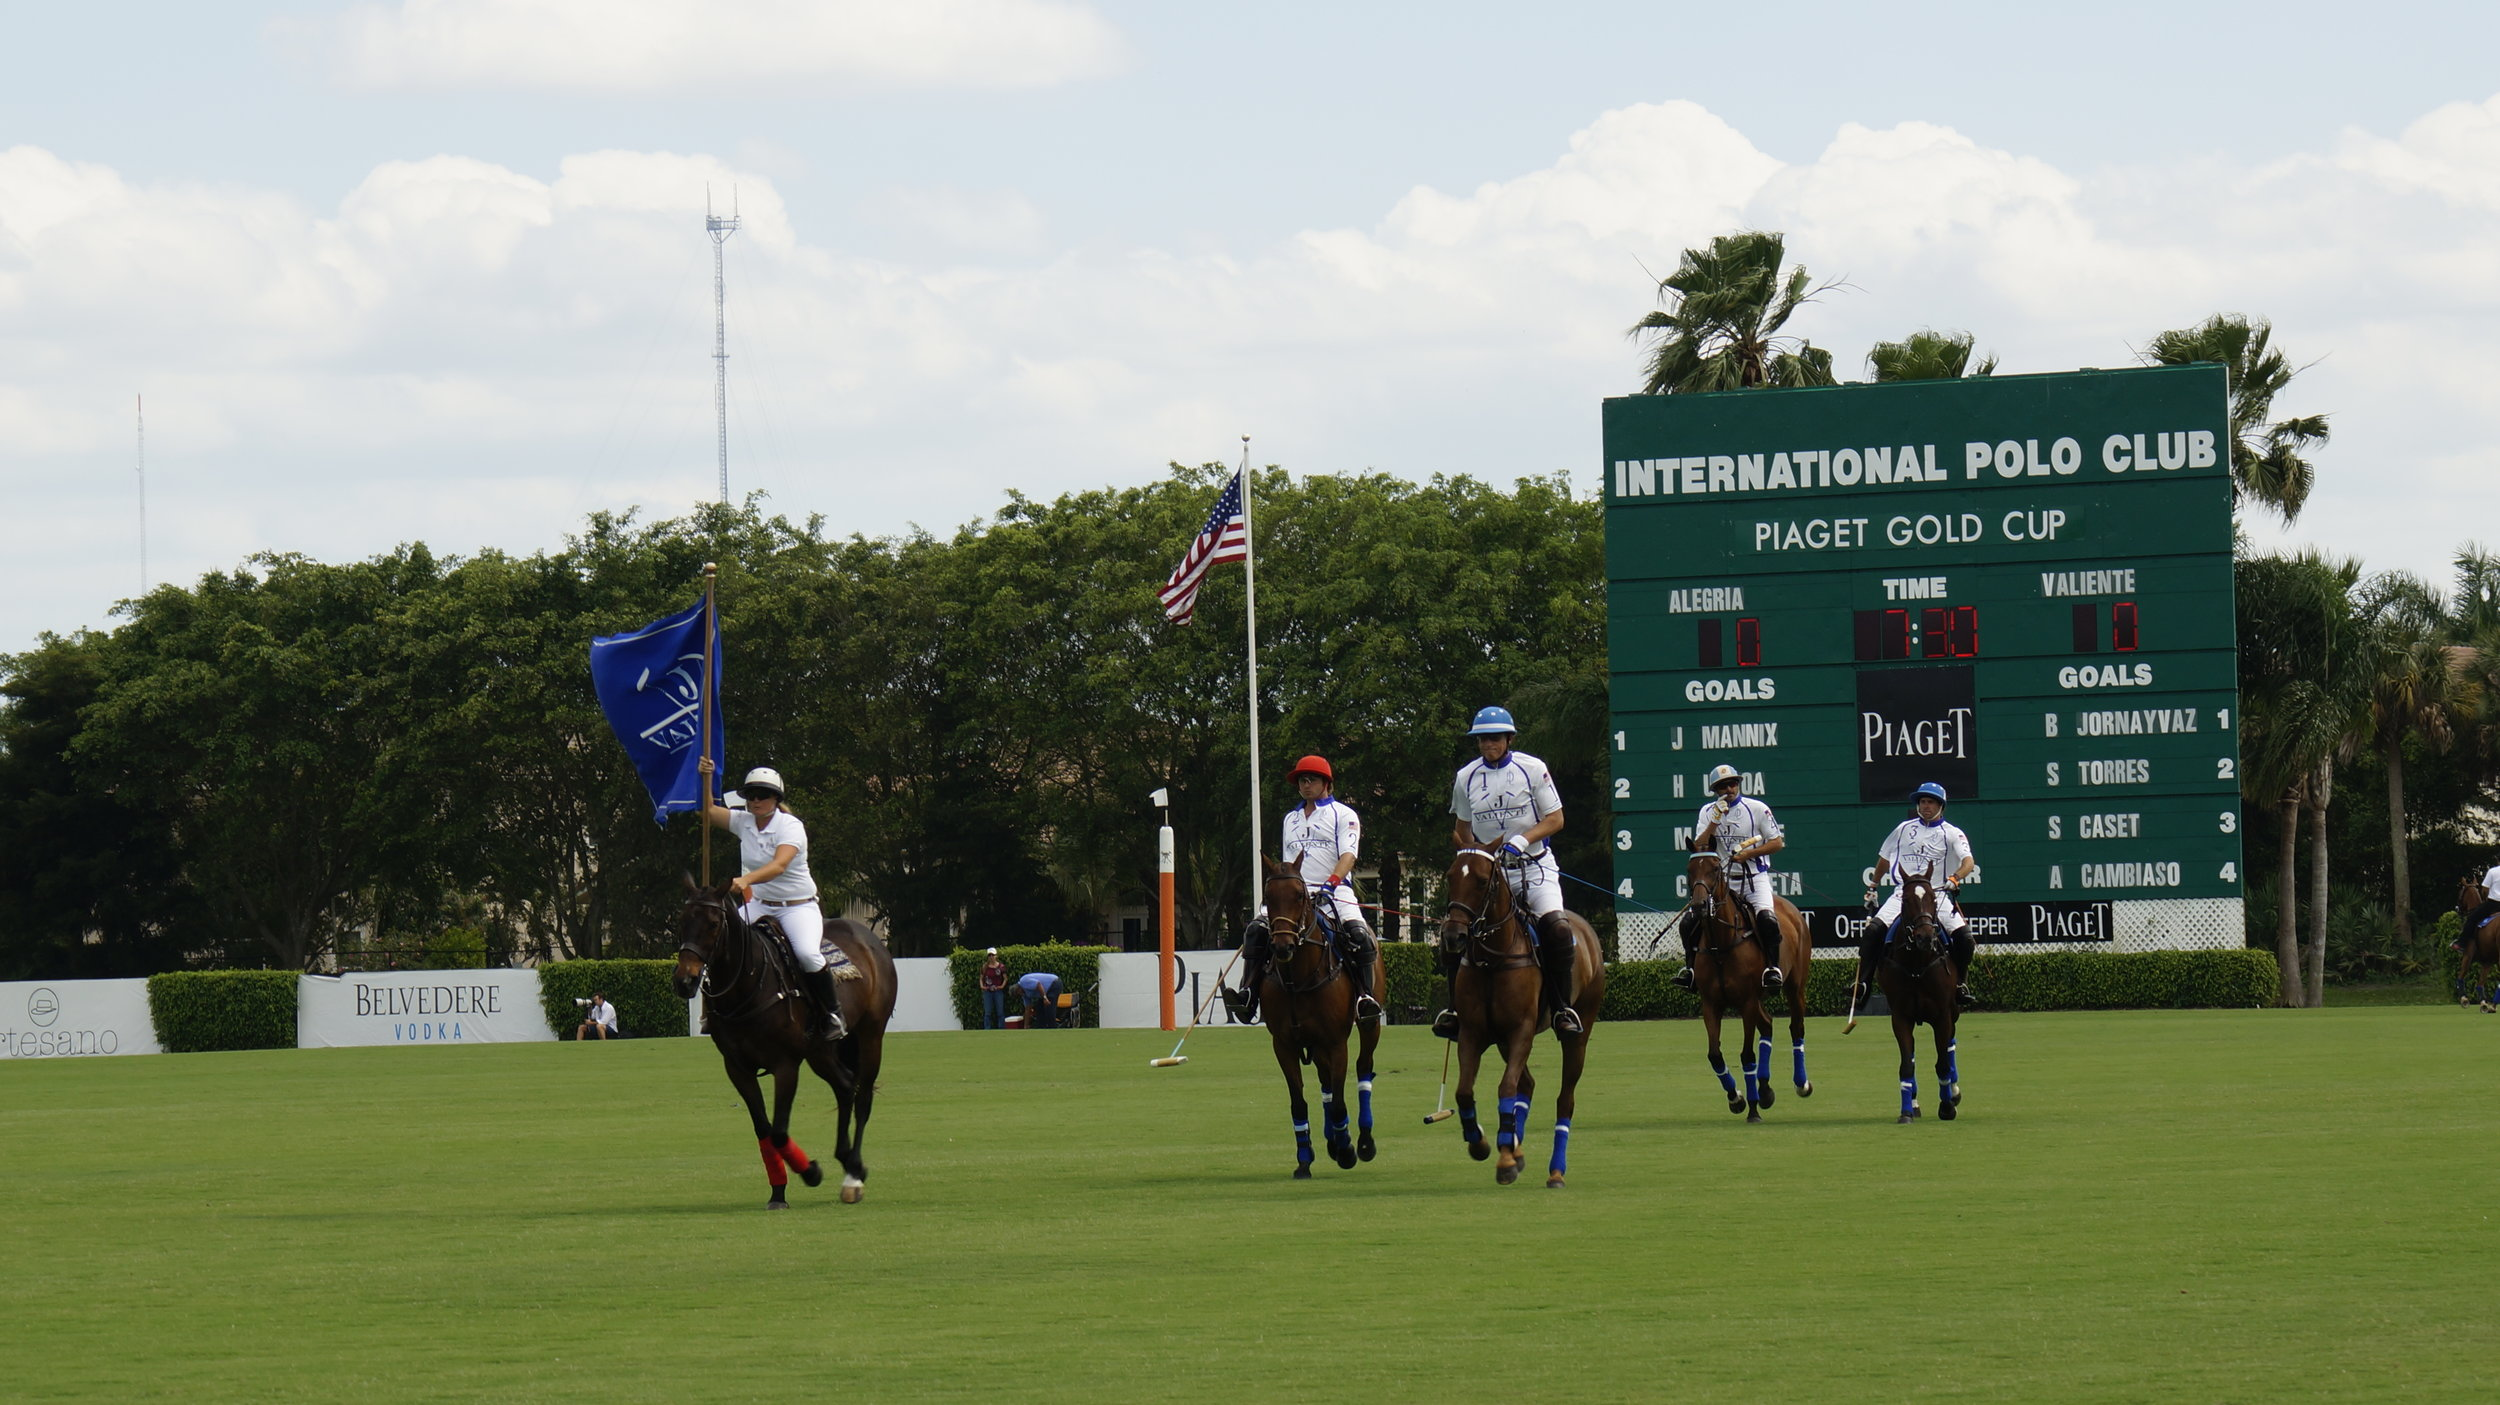 International_Polo_Club,_Team_Valiente_2014.JPG